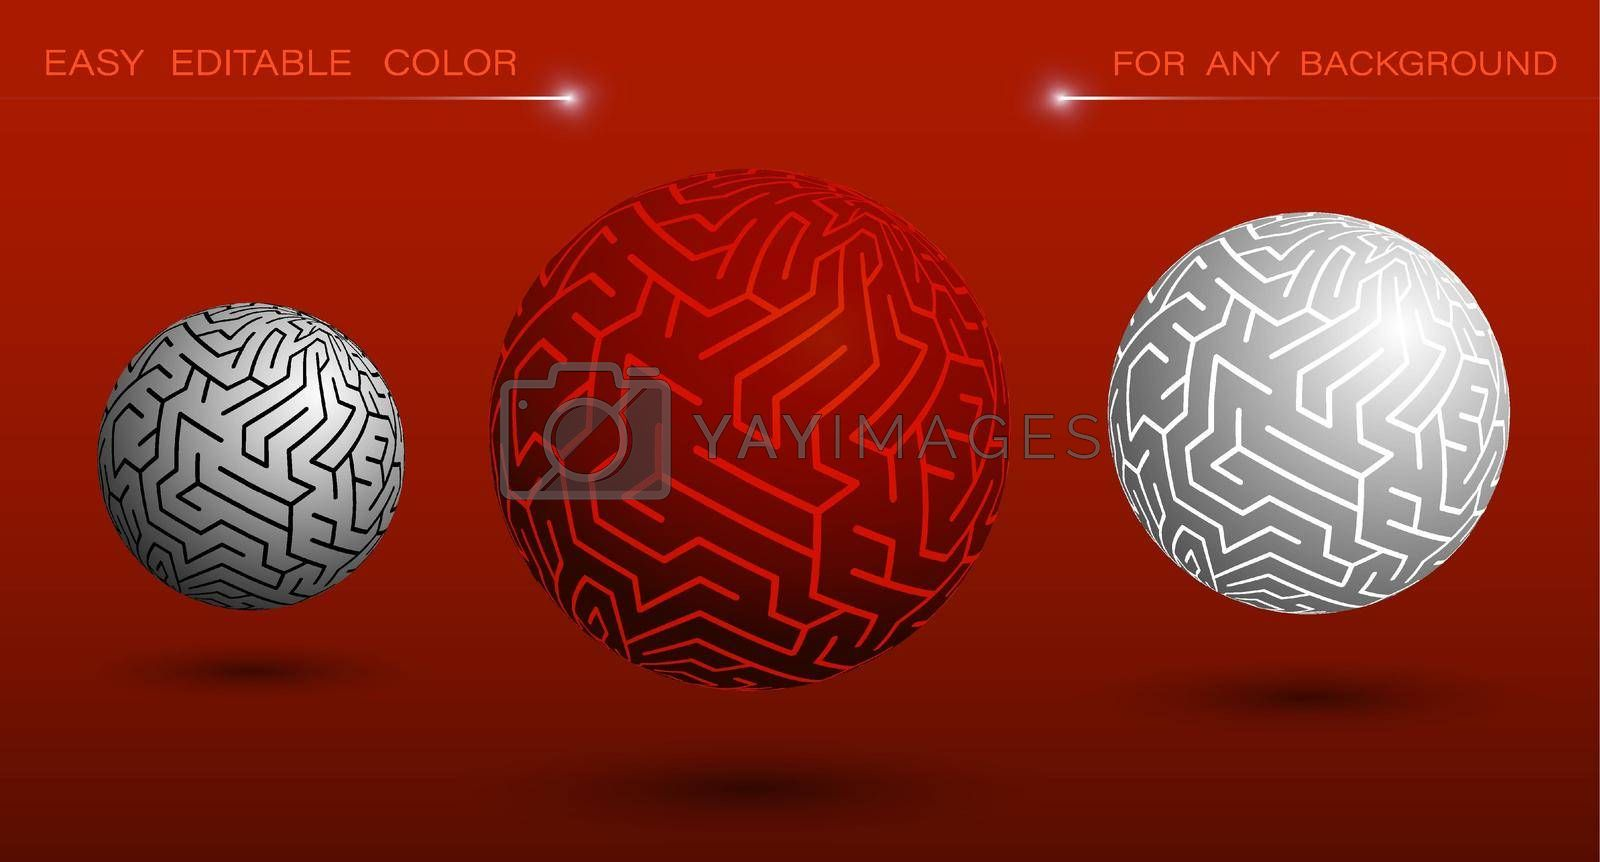 decorative sphere with labyrinth ornament. Design element or ready made tech banner decoration. Easy to edit ornament and background color. Vector